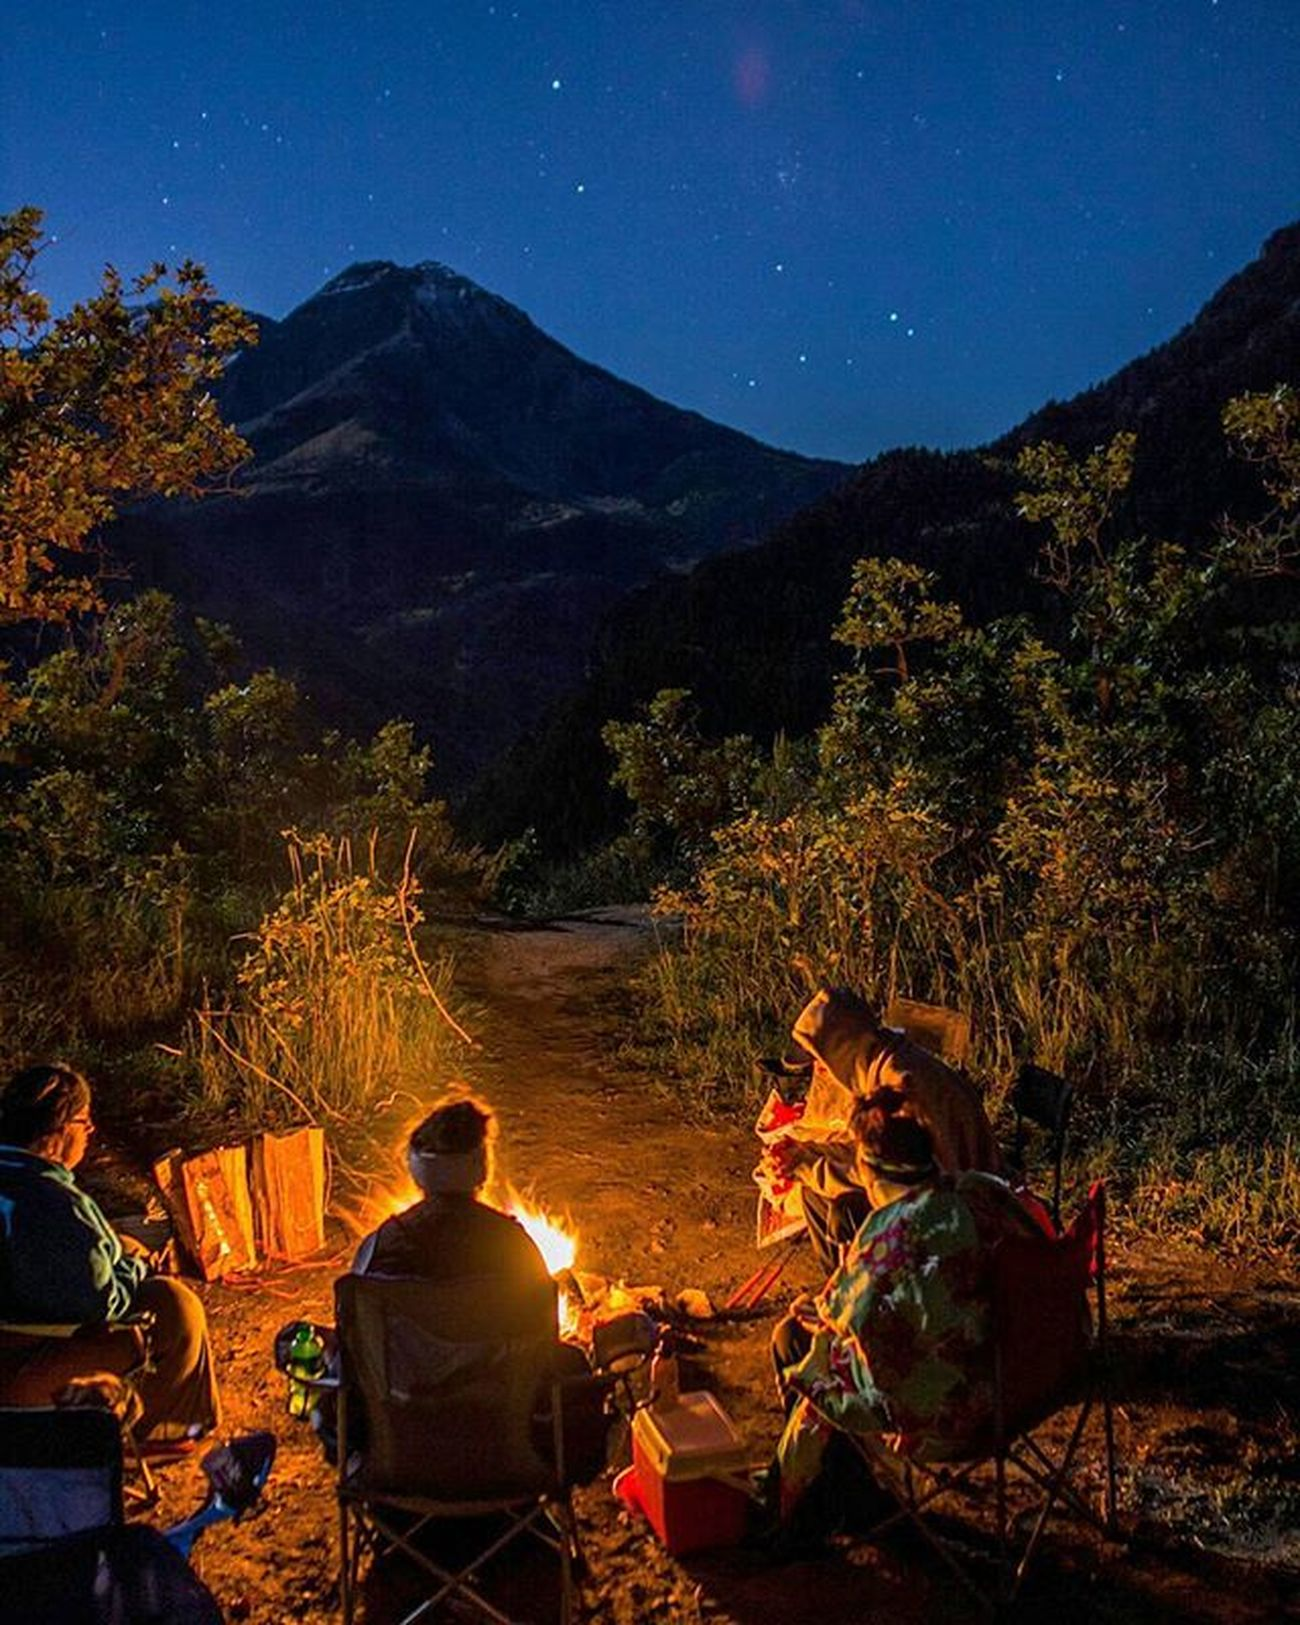 Soon.... sooon! Maybe this weekend? CampLife Camping Campfire Storytelling Openfire Mountaincrush Utah Campvibes